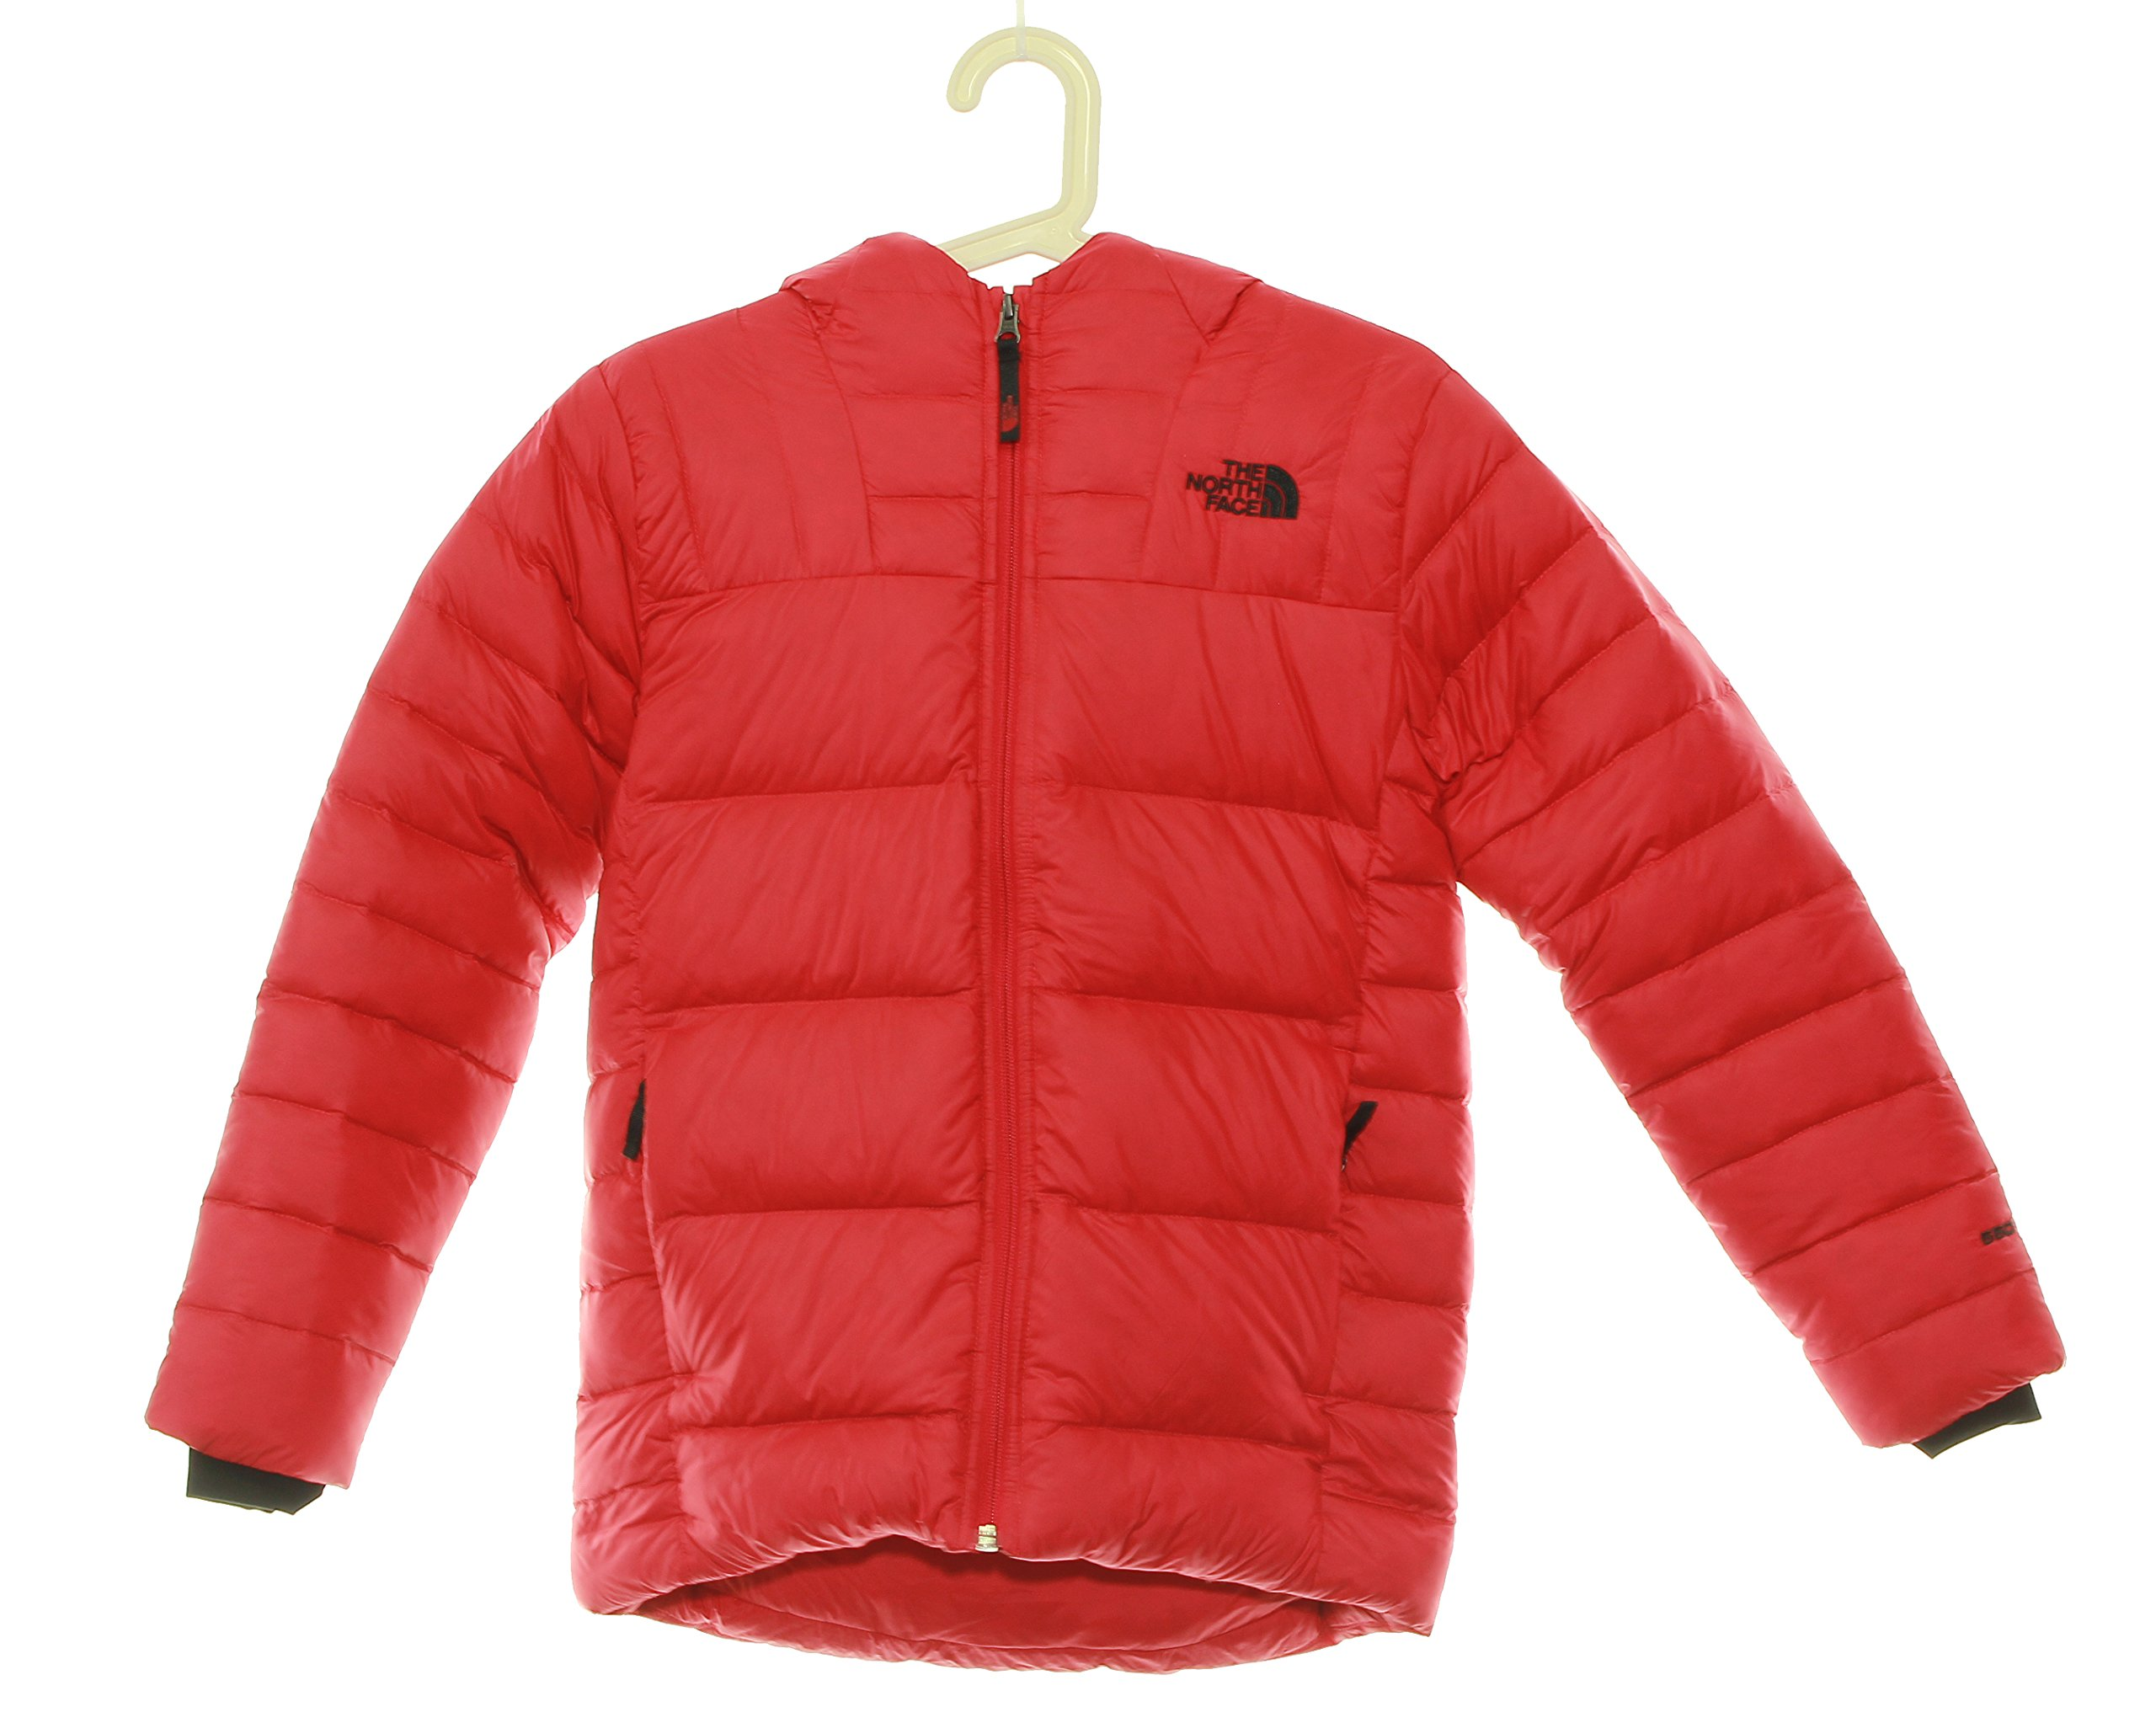 Boy's The North Face Double Down Hoodie Jacket 10/12 Medium Red by No Warranty The North Face